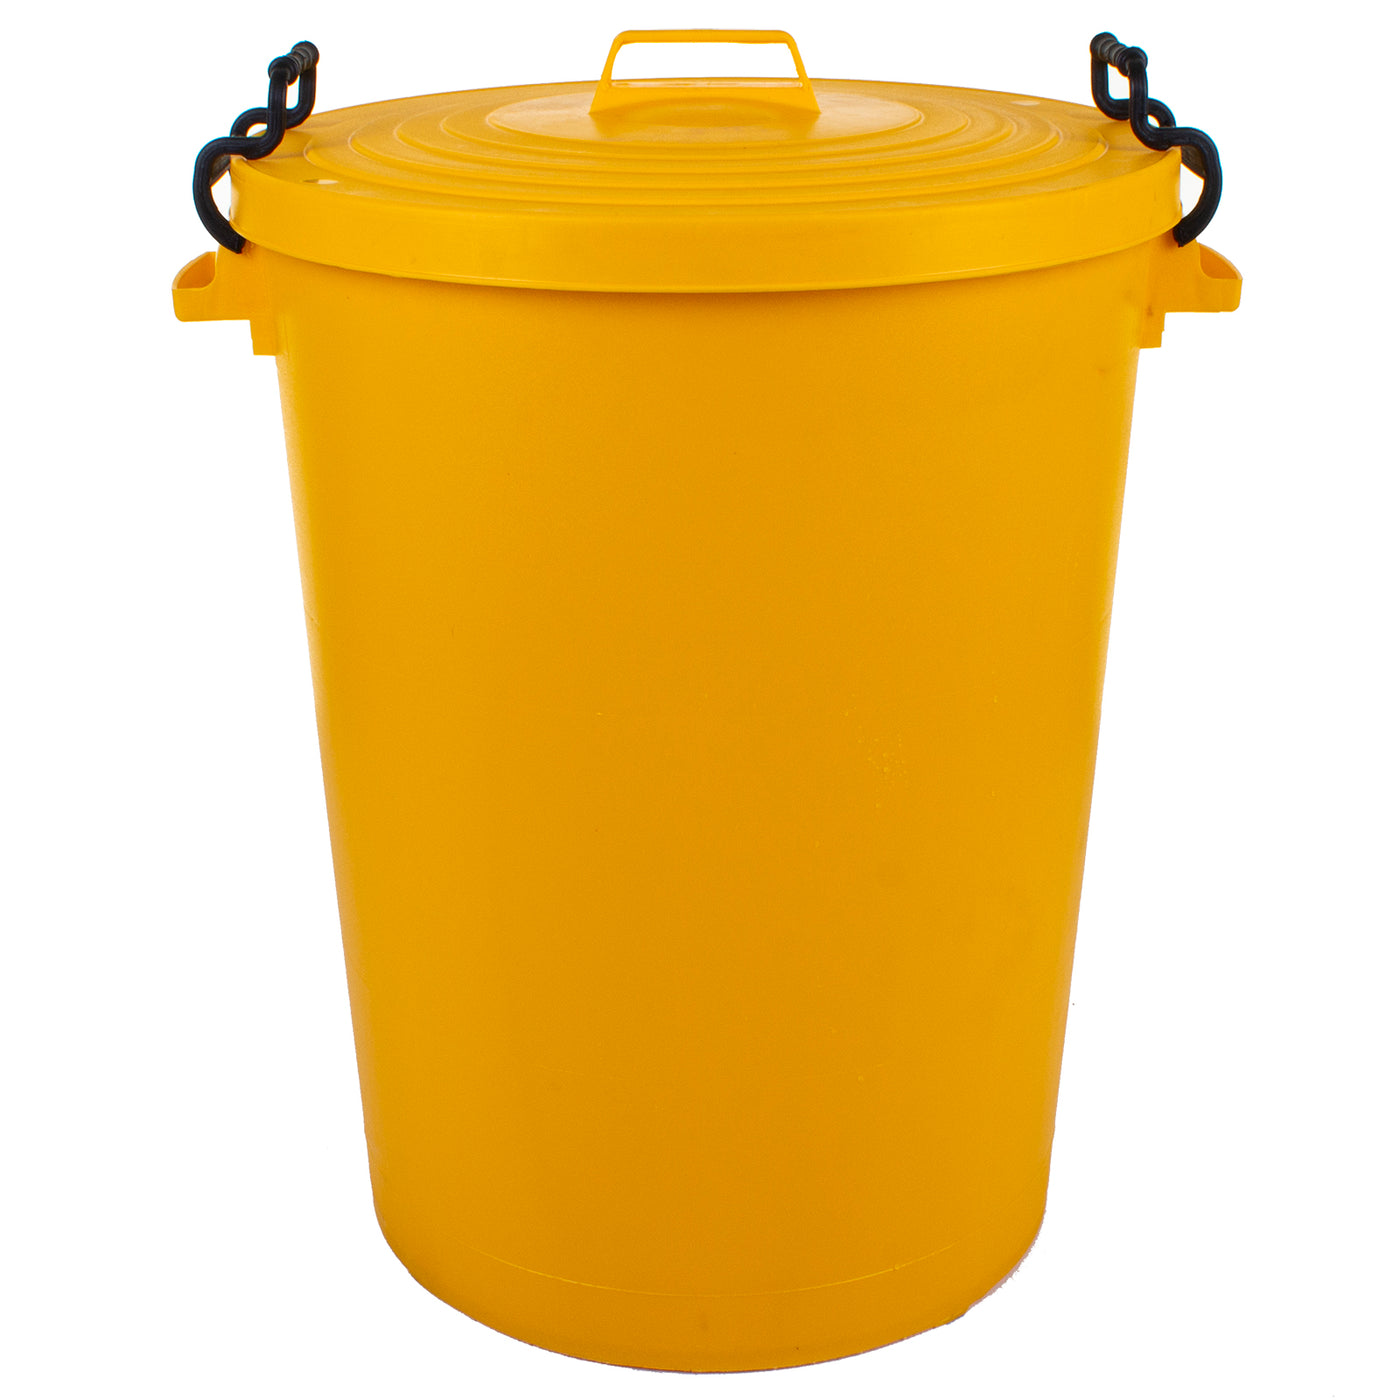 110L Plastic Outdoor Bins - In Store - JMart Warehouse